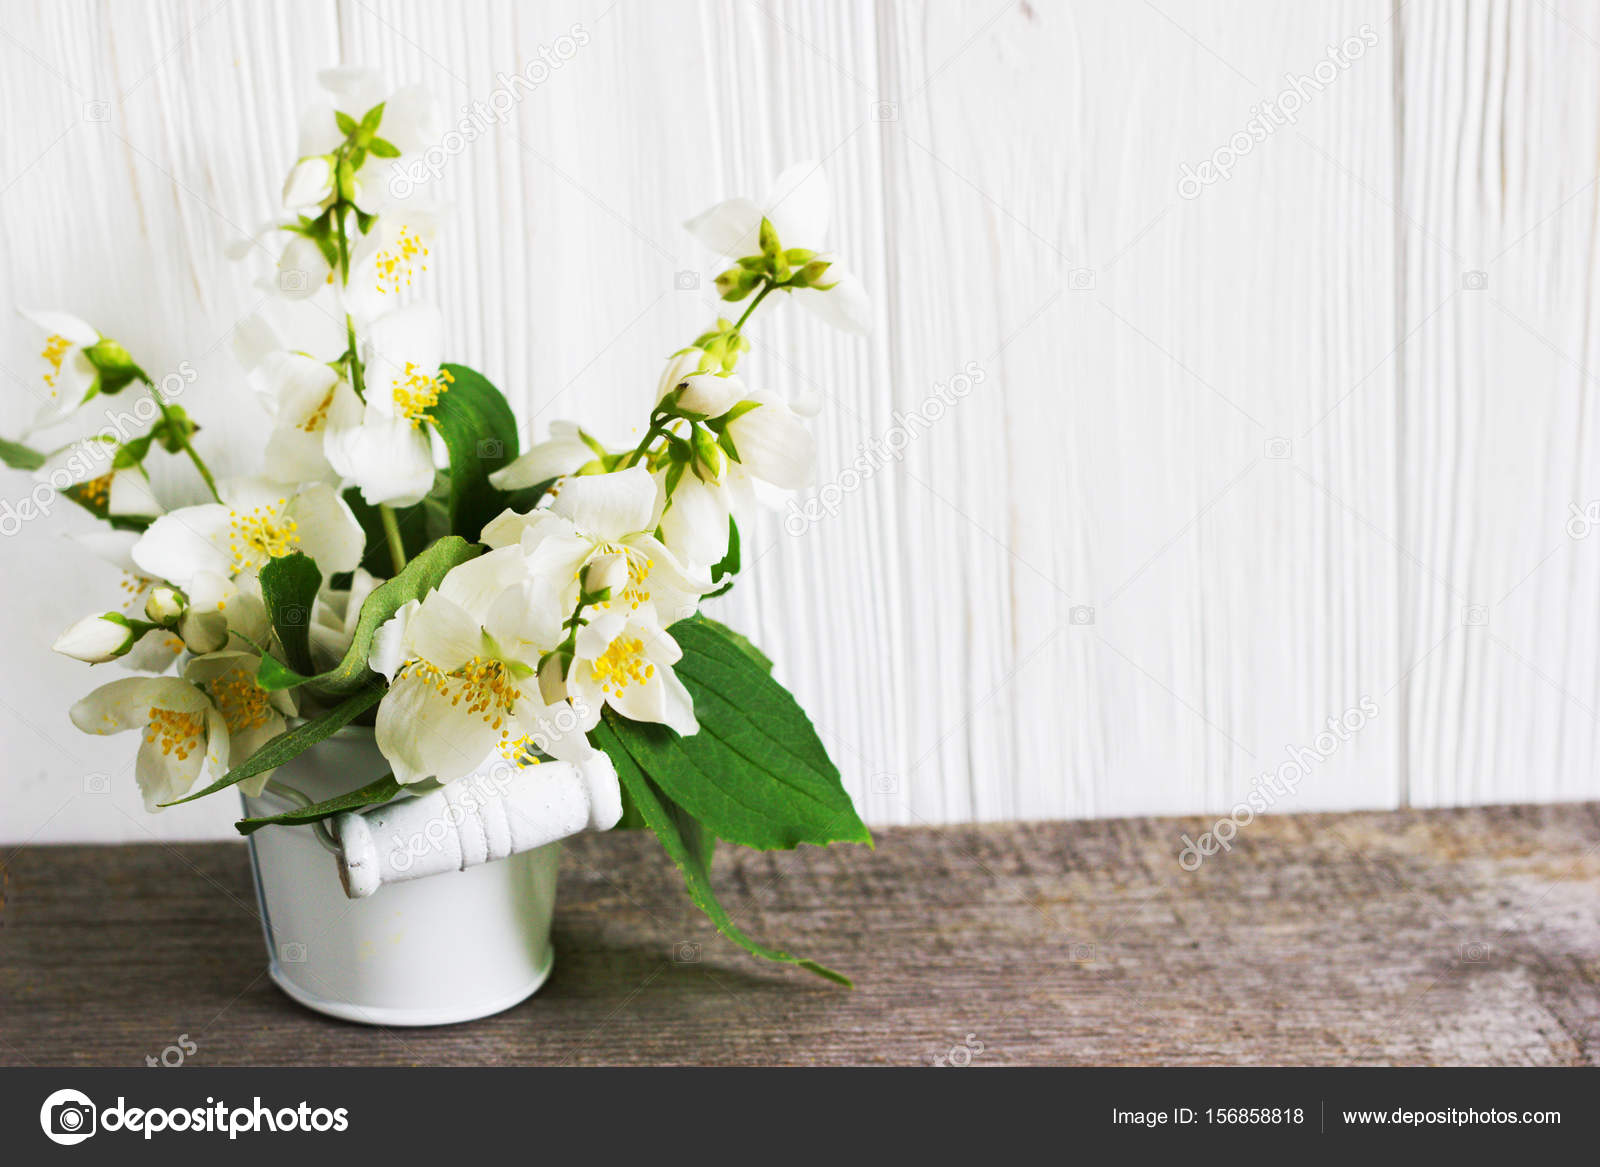 Jasmine Flower On Wooden Table Greeting Card Stock Photo